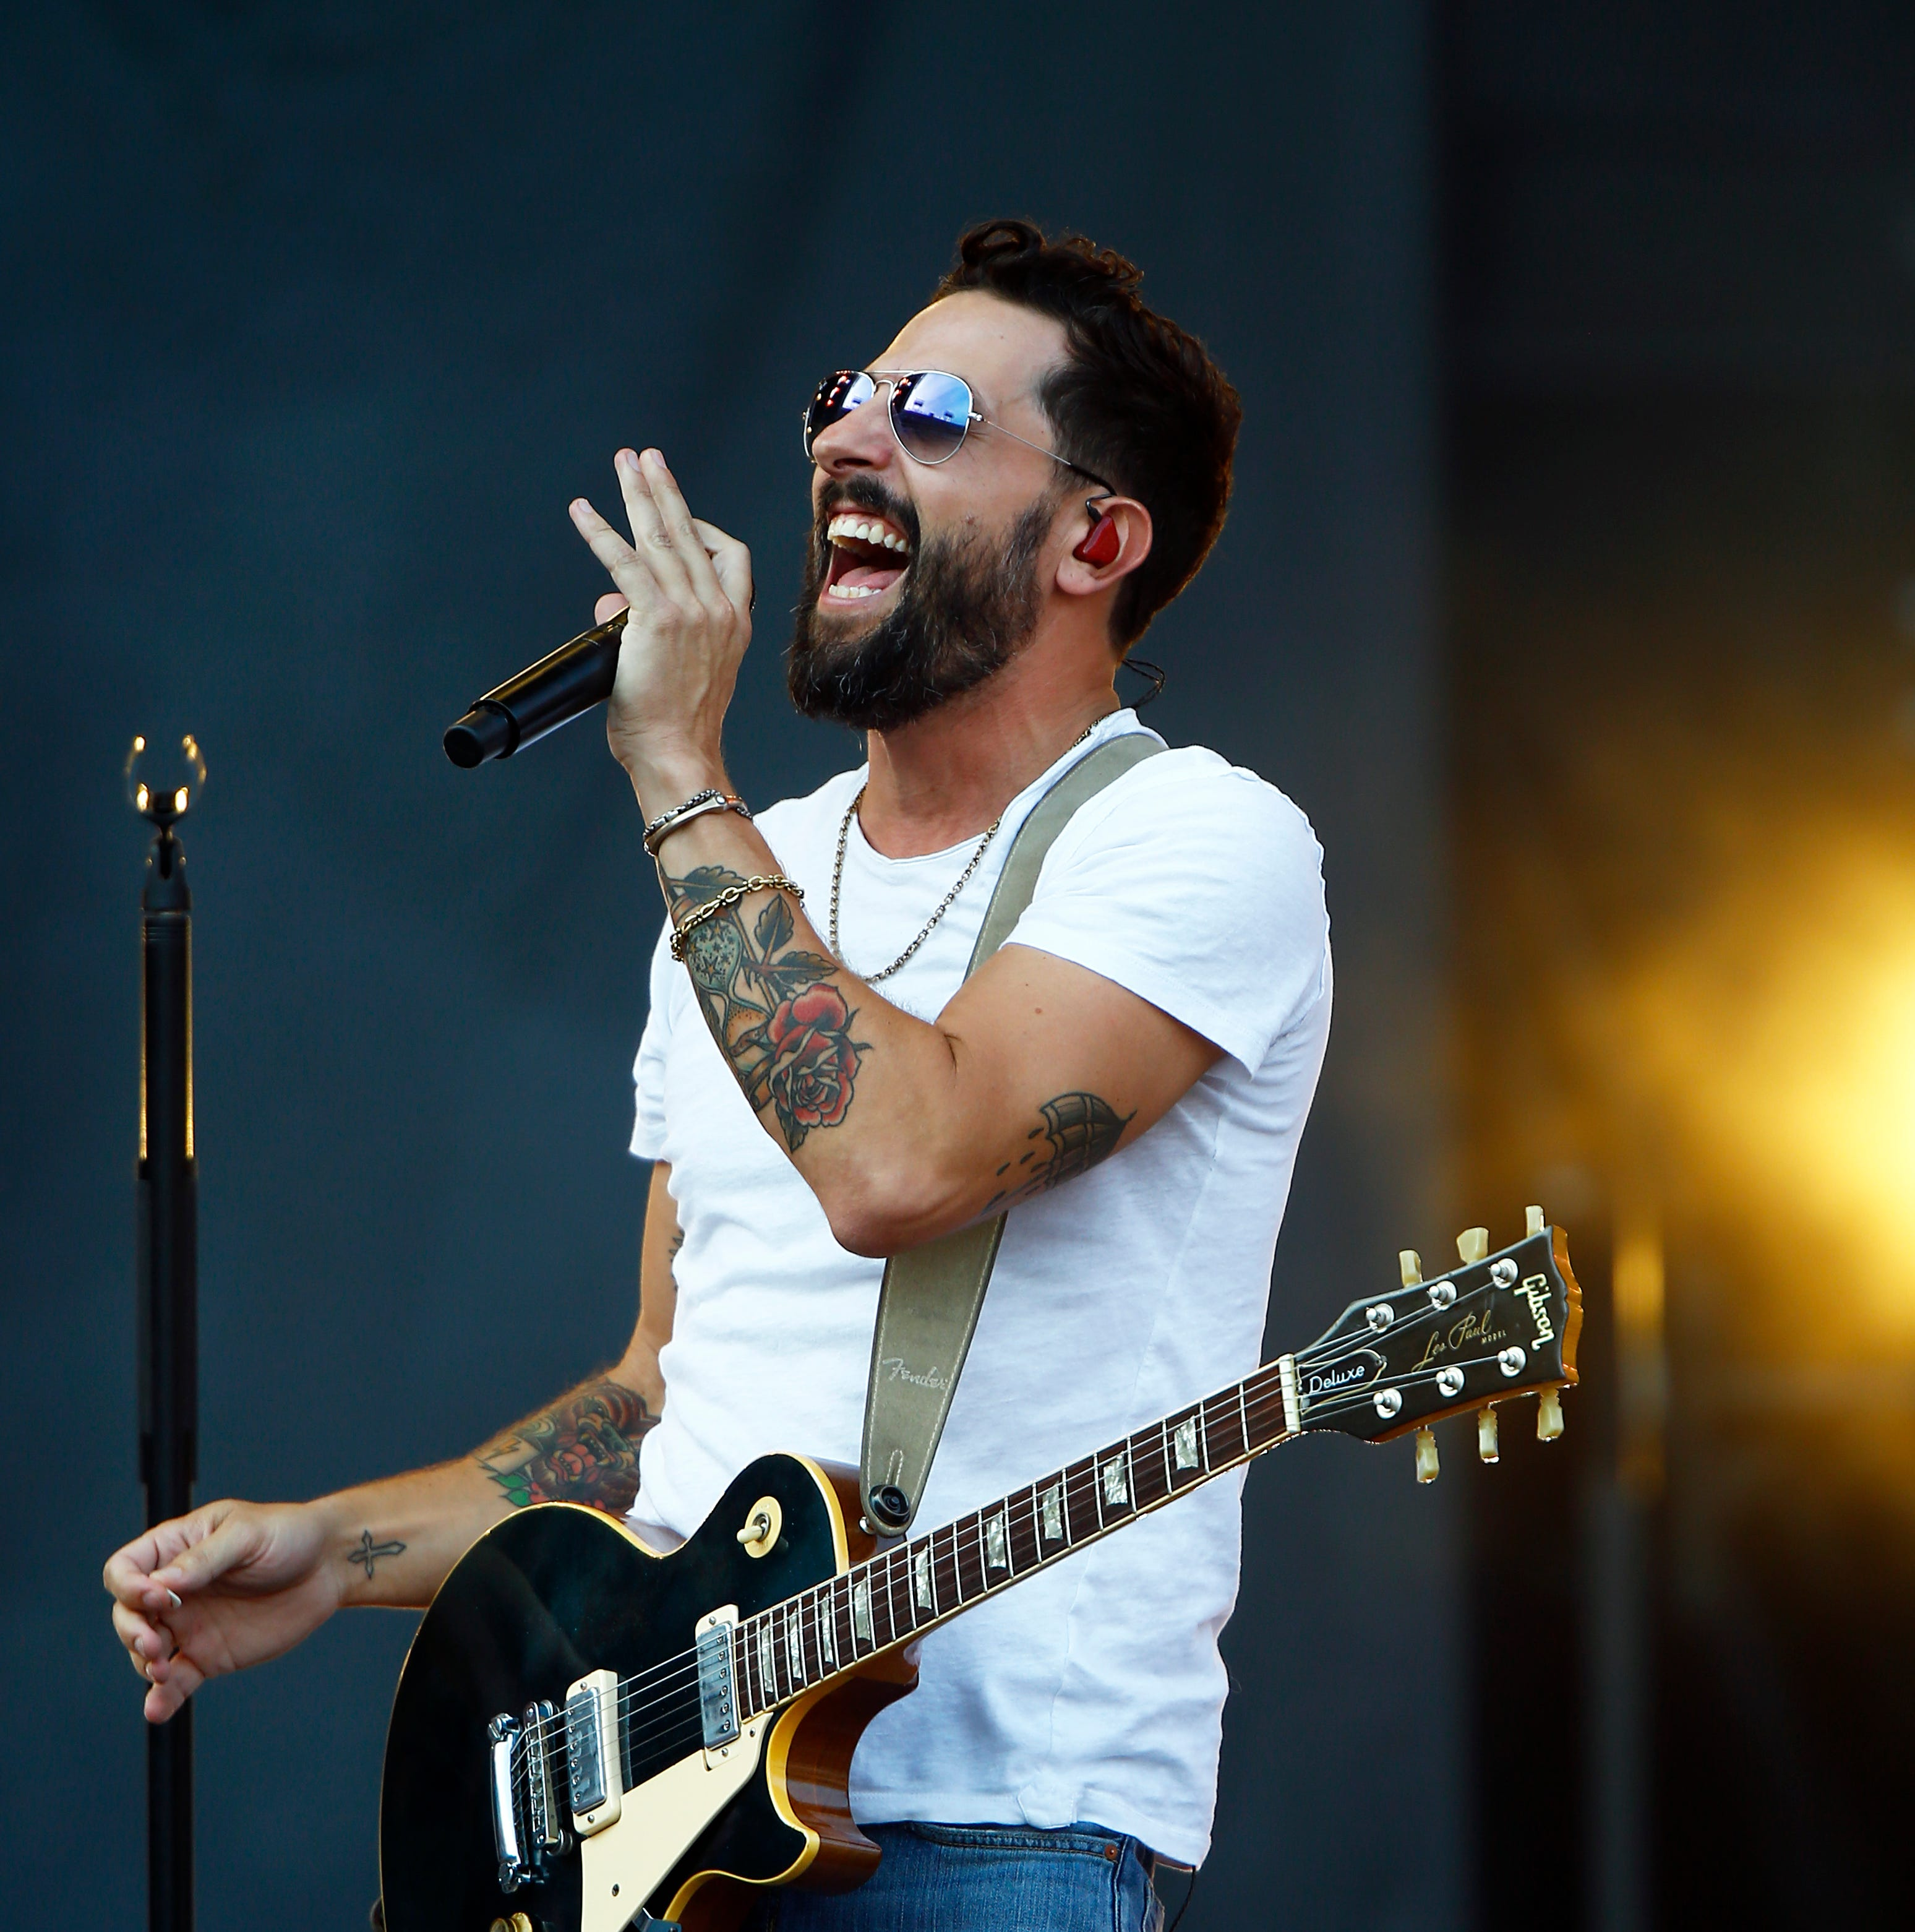 Must-see picks include country act Old Dominion in Milton